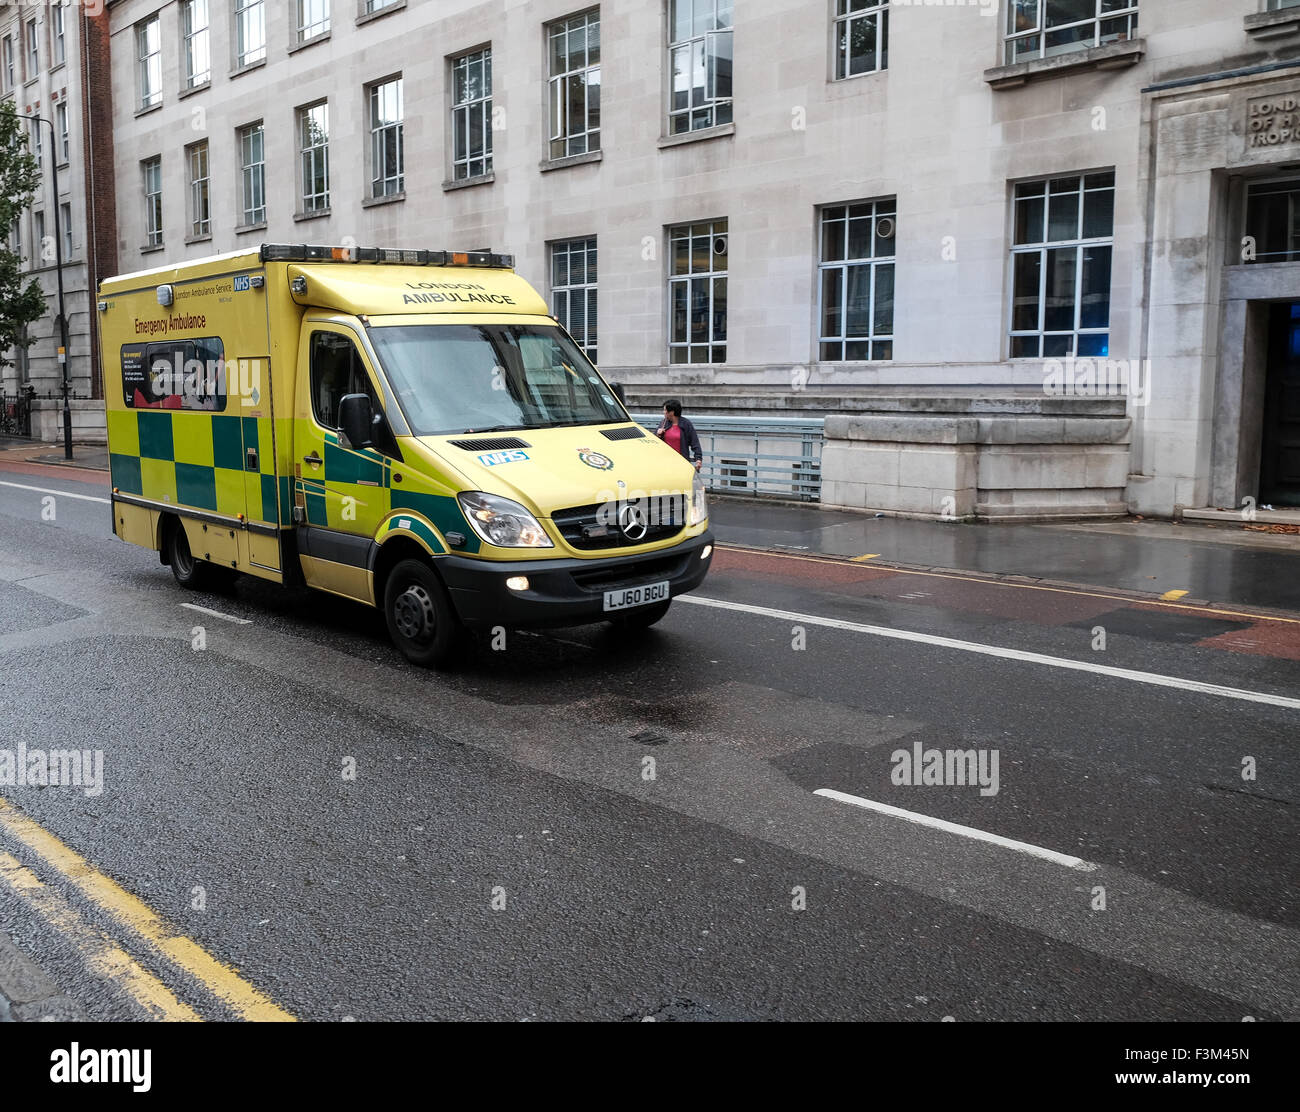 London ambulance services on an emergency call past London school of Hygiene and tropical medicine - Stock Image